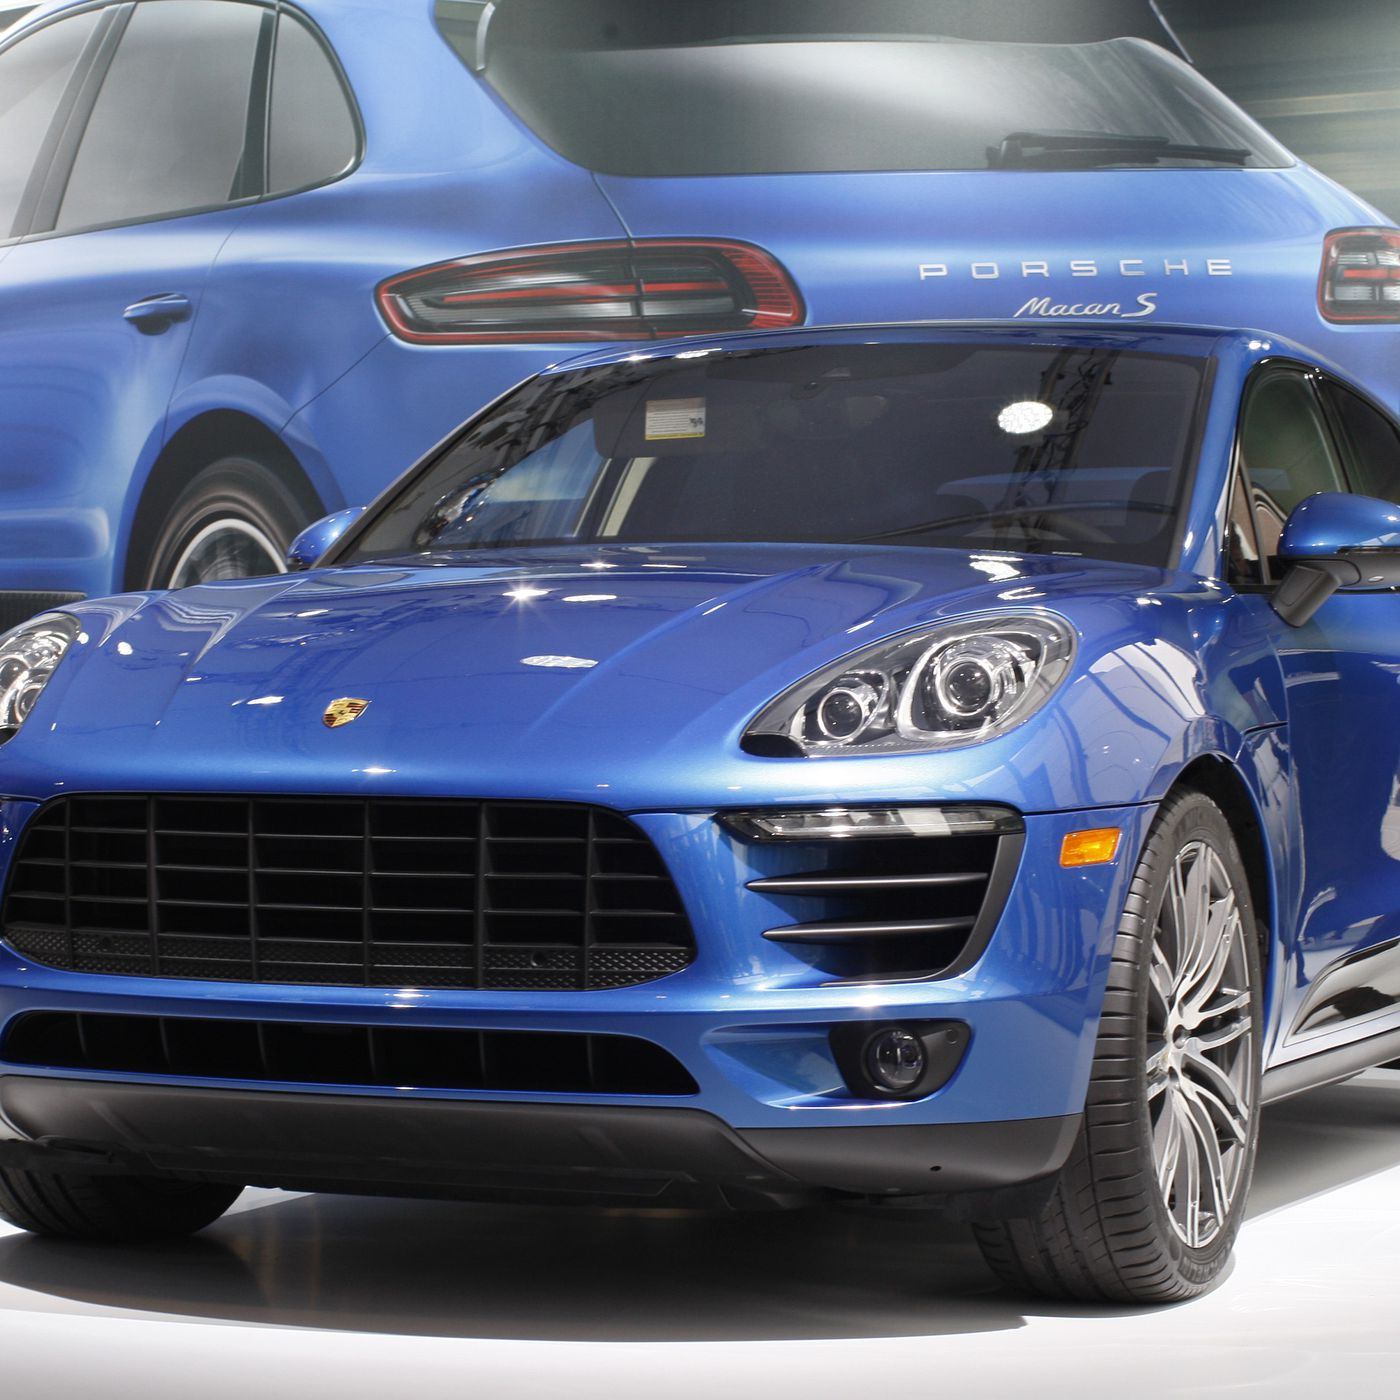 Porsche S Macan Suv Is Going All Electric The Verge